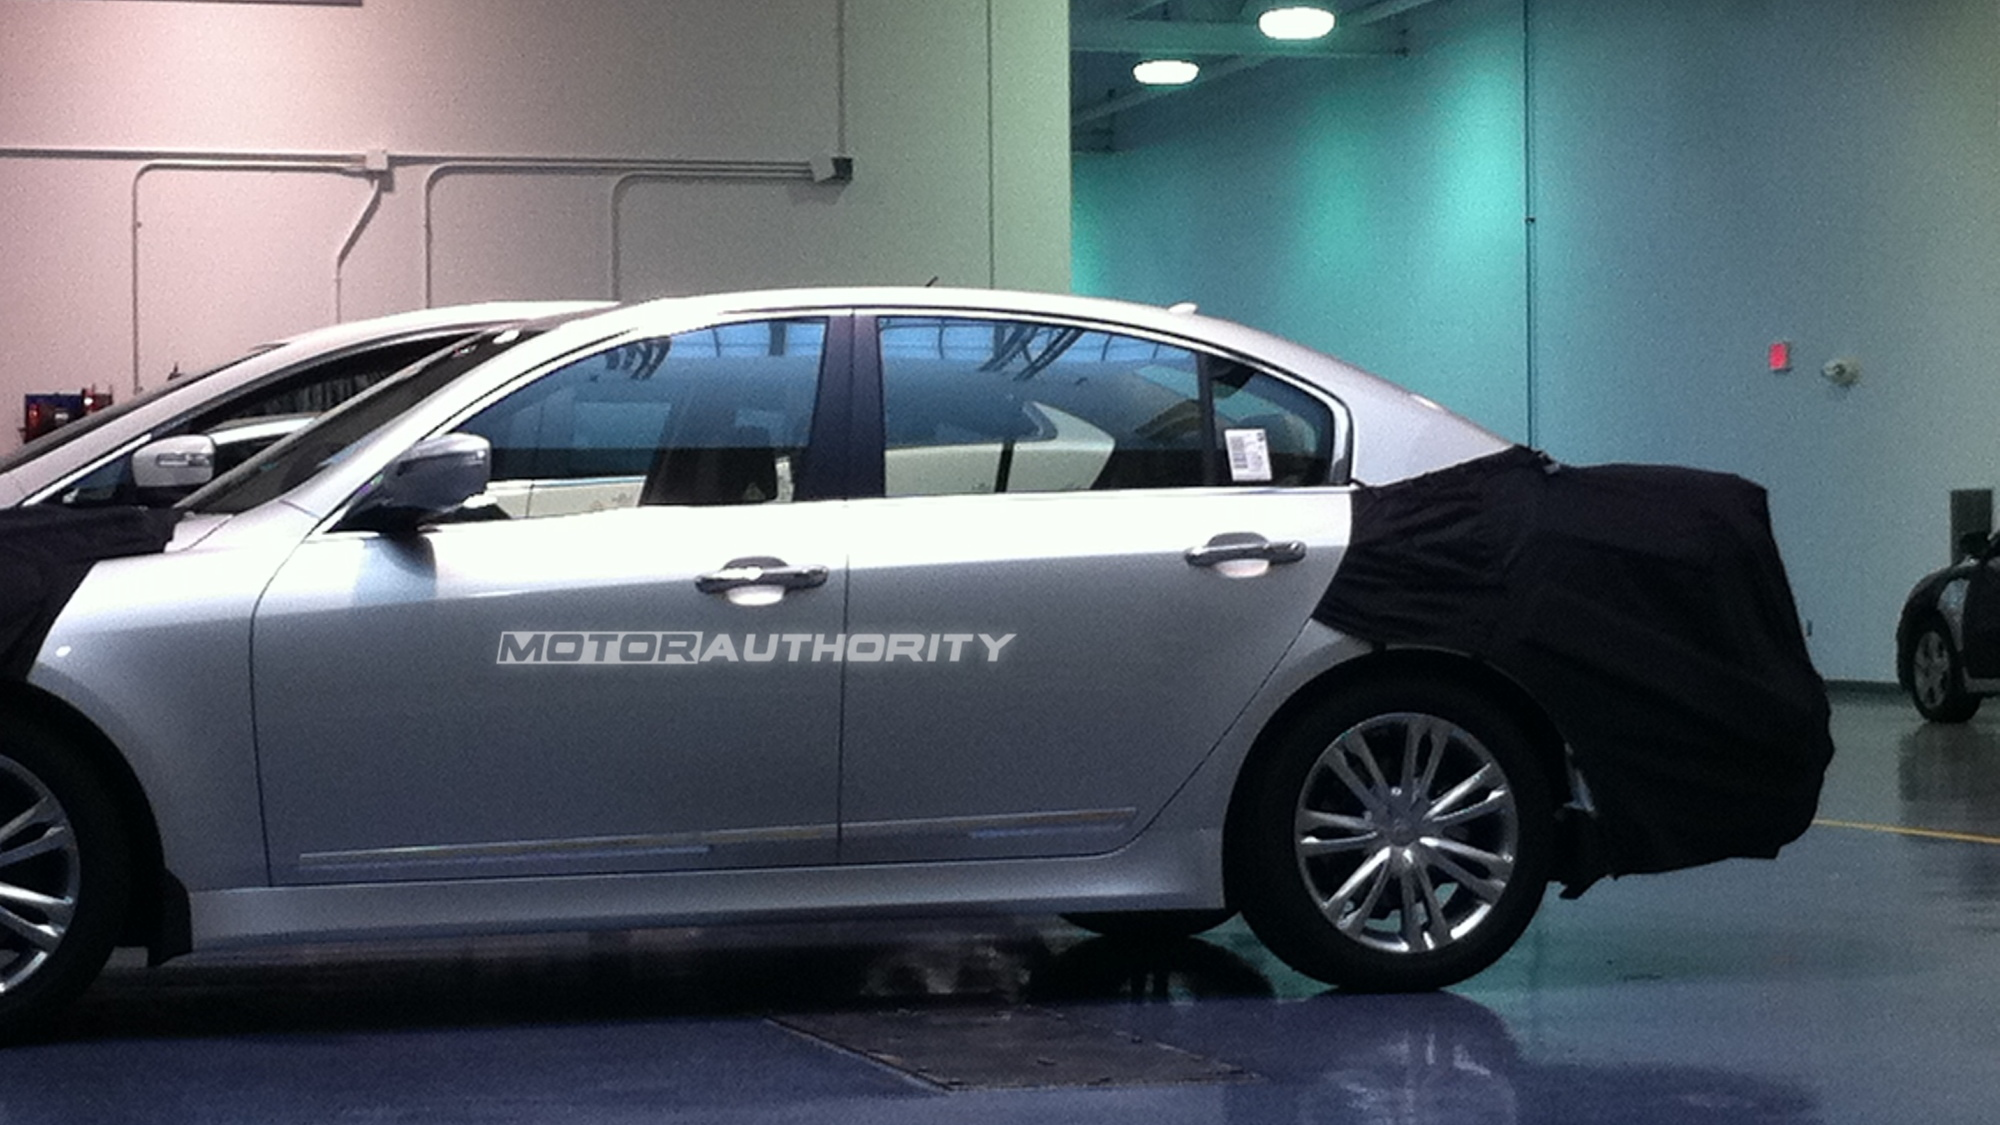 2012 Hyundai Genesis Sedan spy shots from inside Hyundai's Technical Center